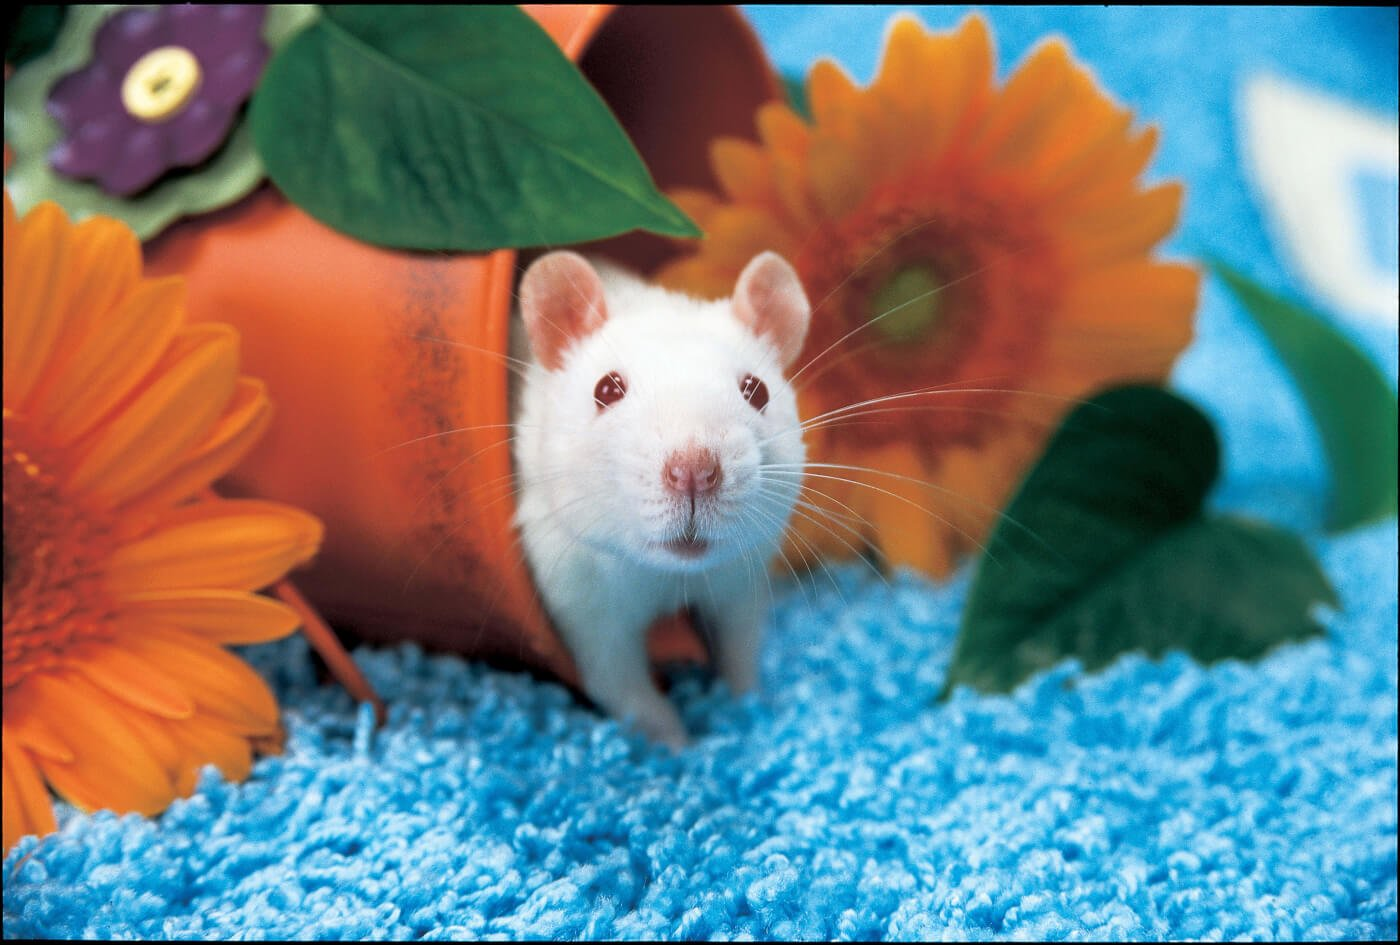 testing cosmetics and household products on animals peta